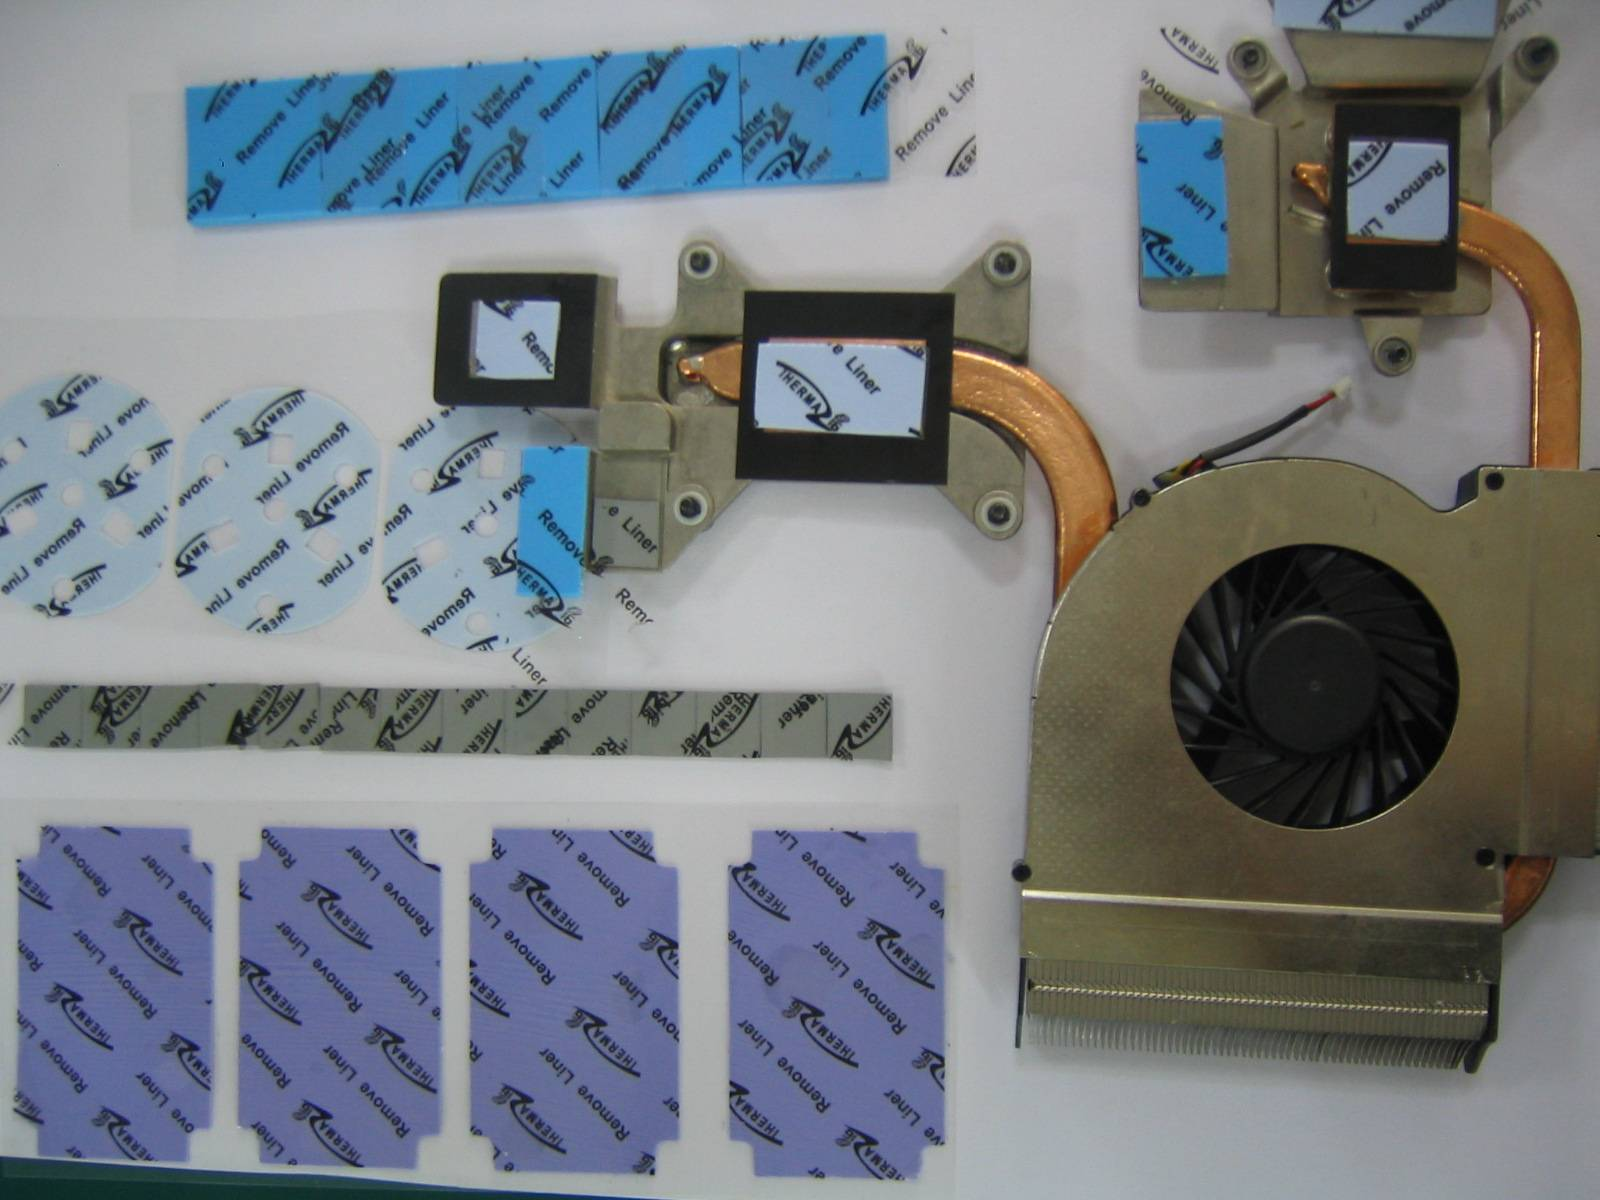 Thermally conductive interface materials